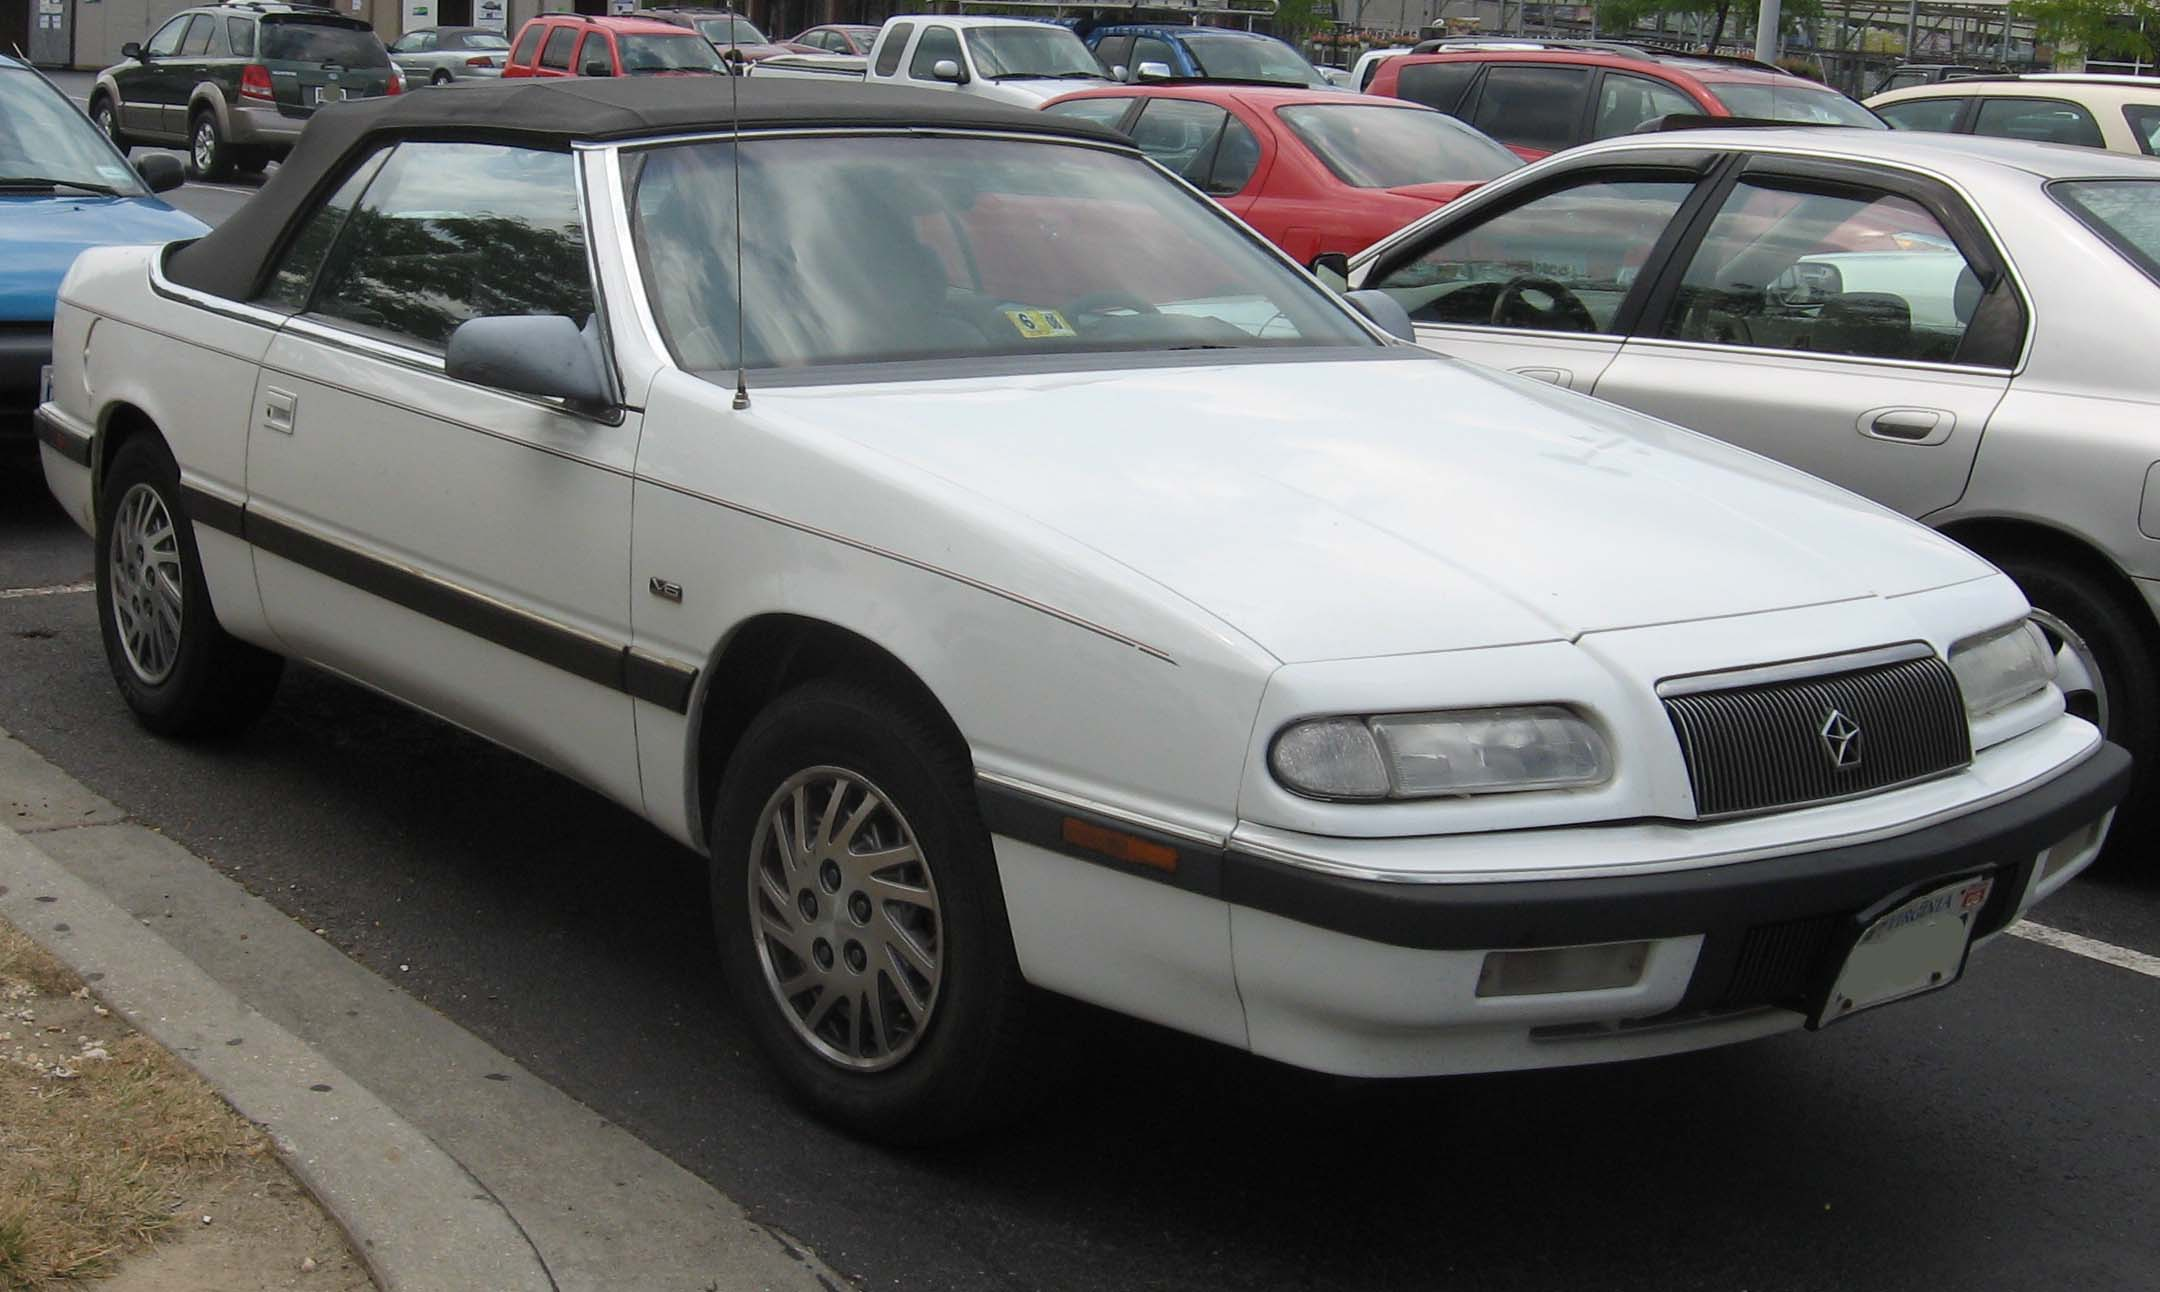 1995 Chrysler Le Baron #5